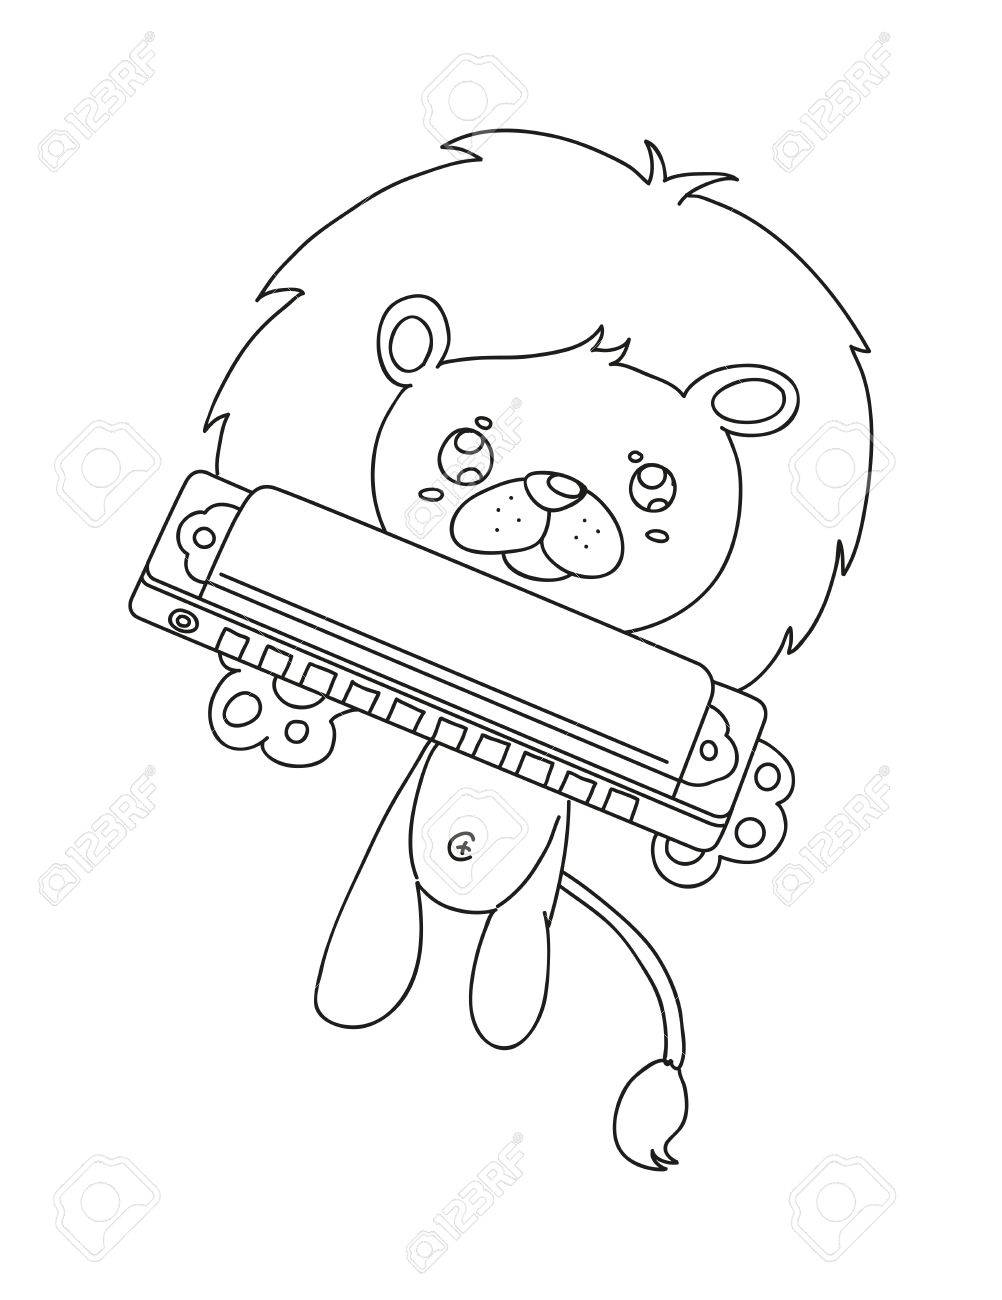 1002x1300 Illustration Of Isolated Hand Drawn Lion Playing Harmonica Vector